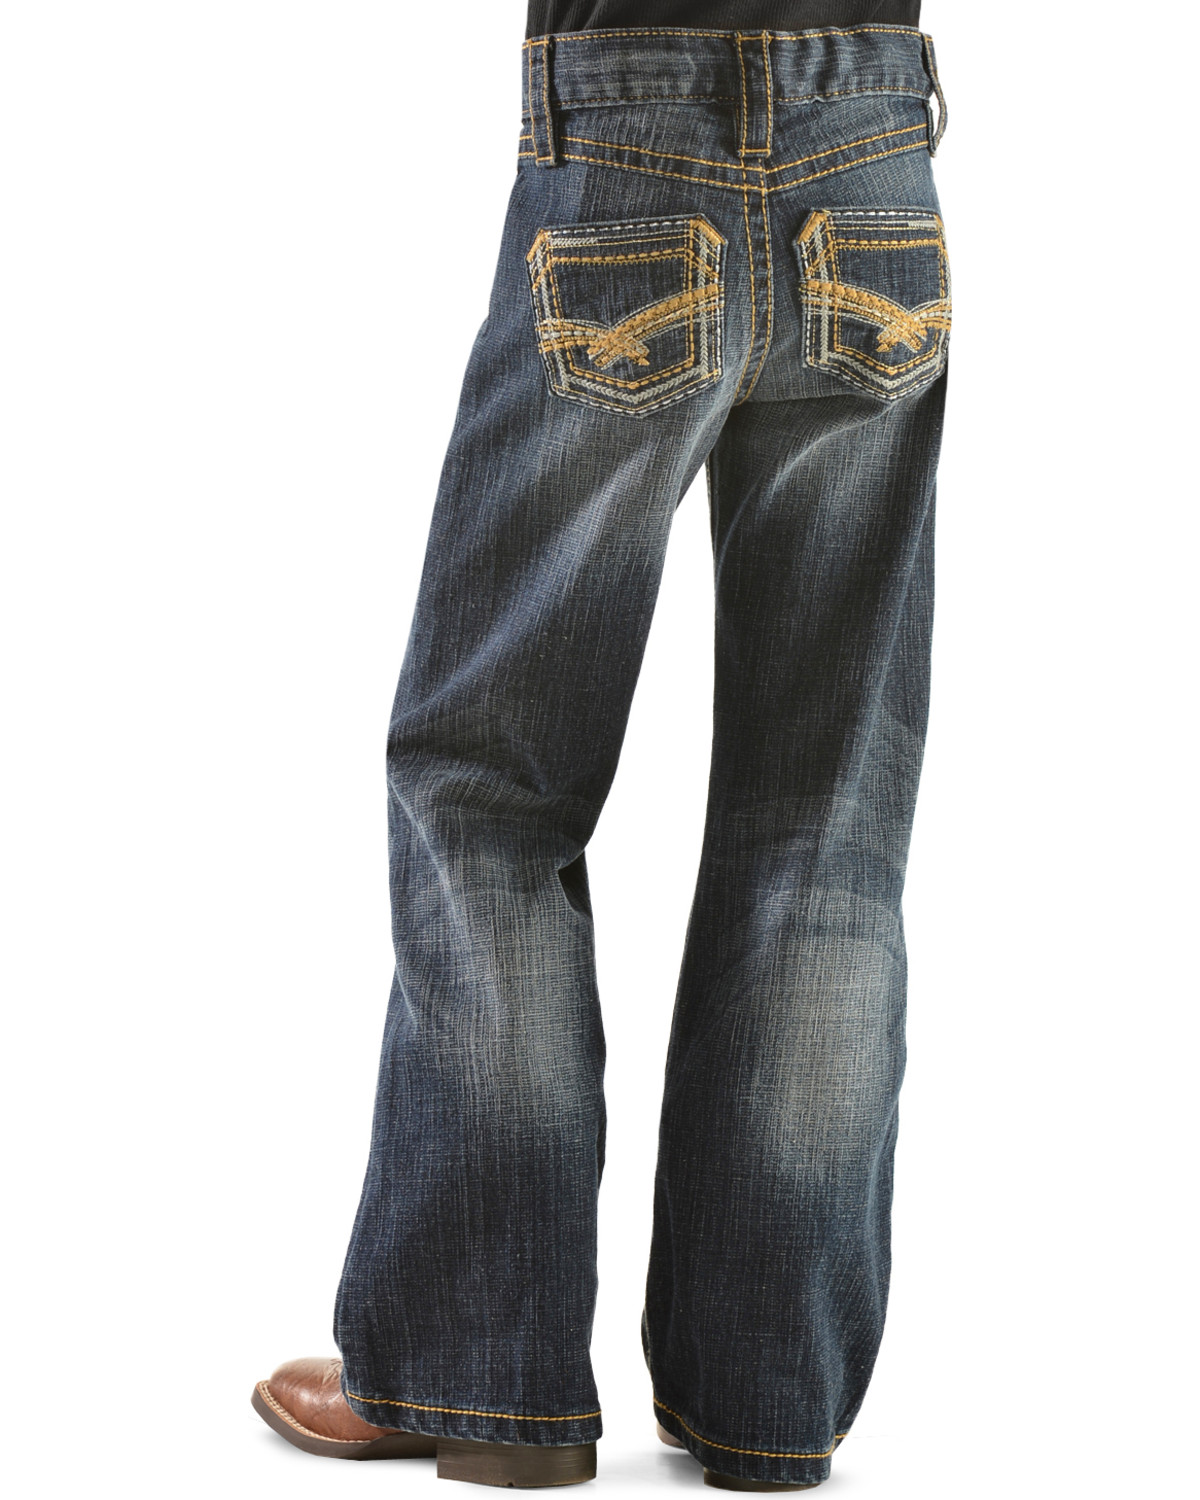 Wrangler Rock 47 >> Wrangler Rock 47 Girls Gold Embroidery Bootcut Jeans 4 6x Boot Barn